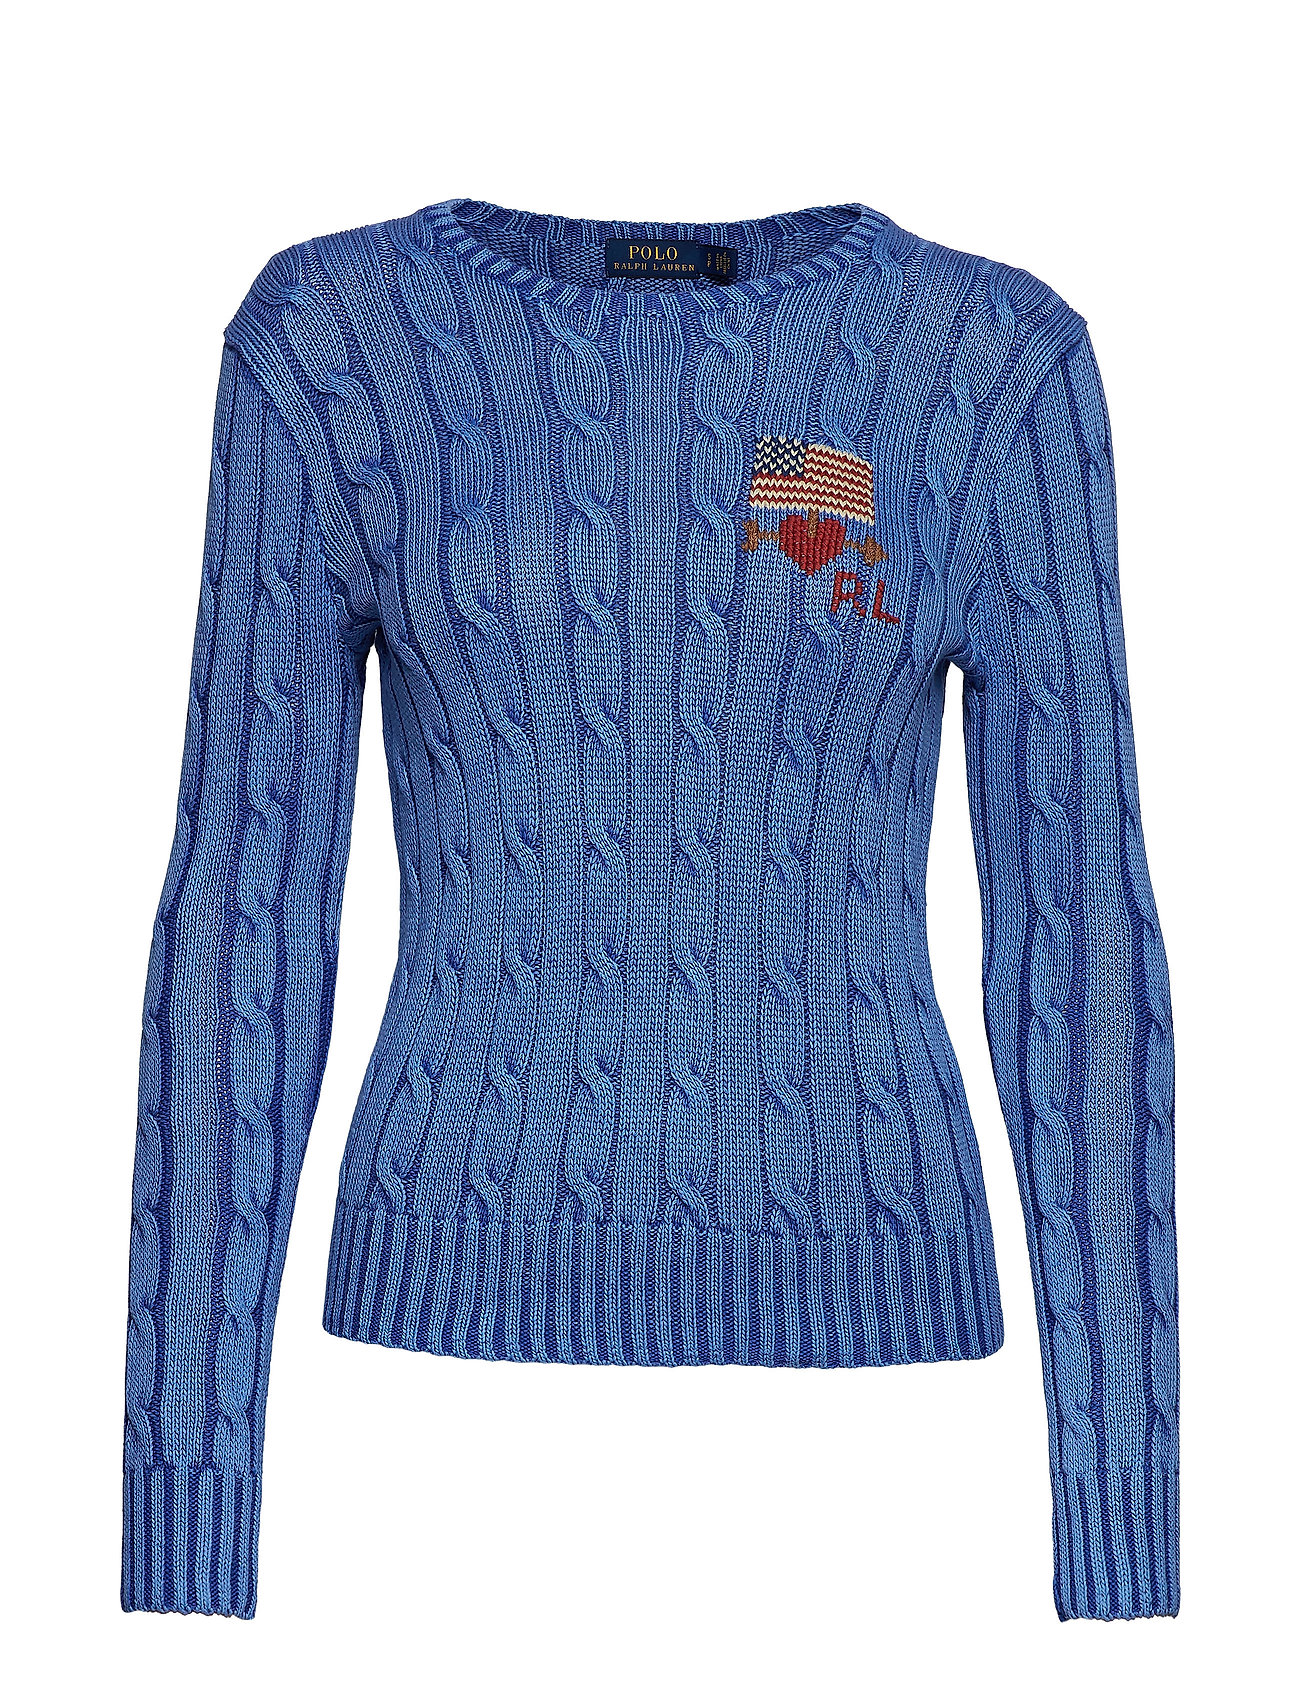 Cable BluePolo Sweatermaidstone Needlepoint knit Ralph Lauren 9DH2EWI